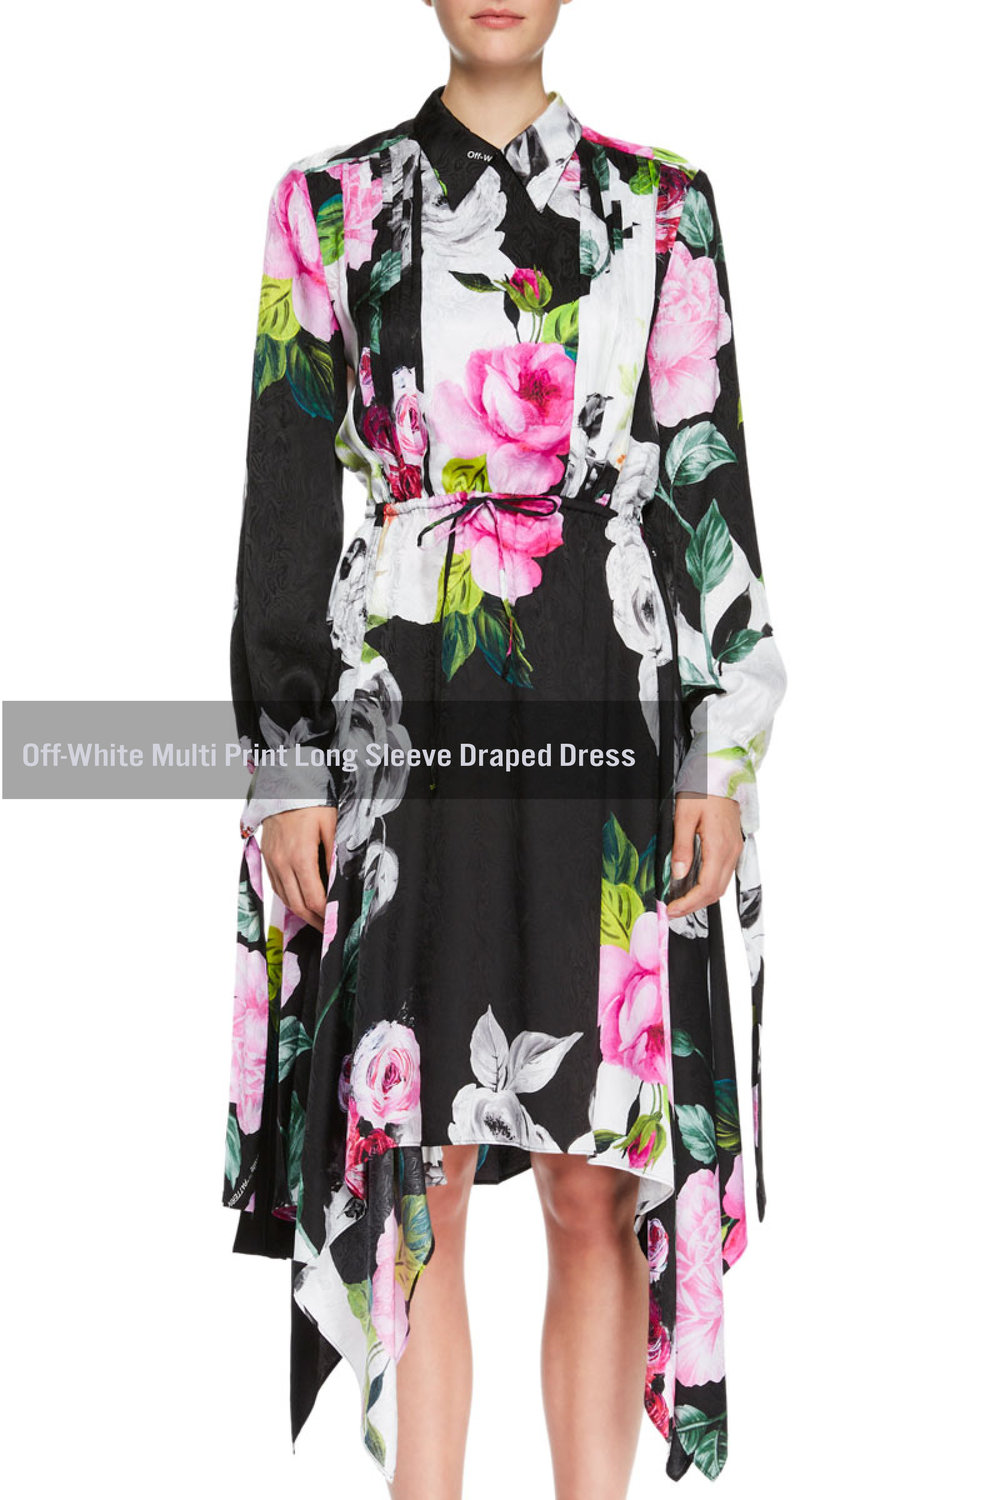 Off-White Multi Print Long Sleeve Draped Dress